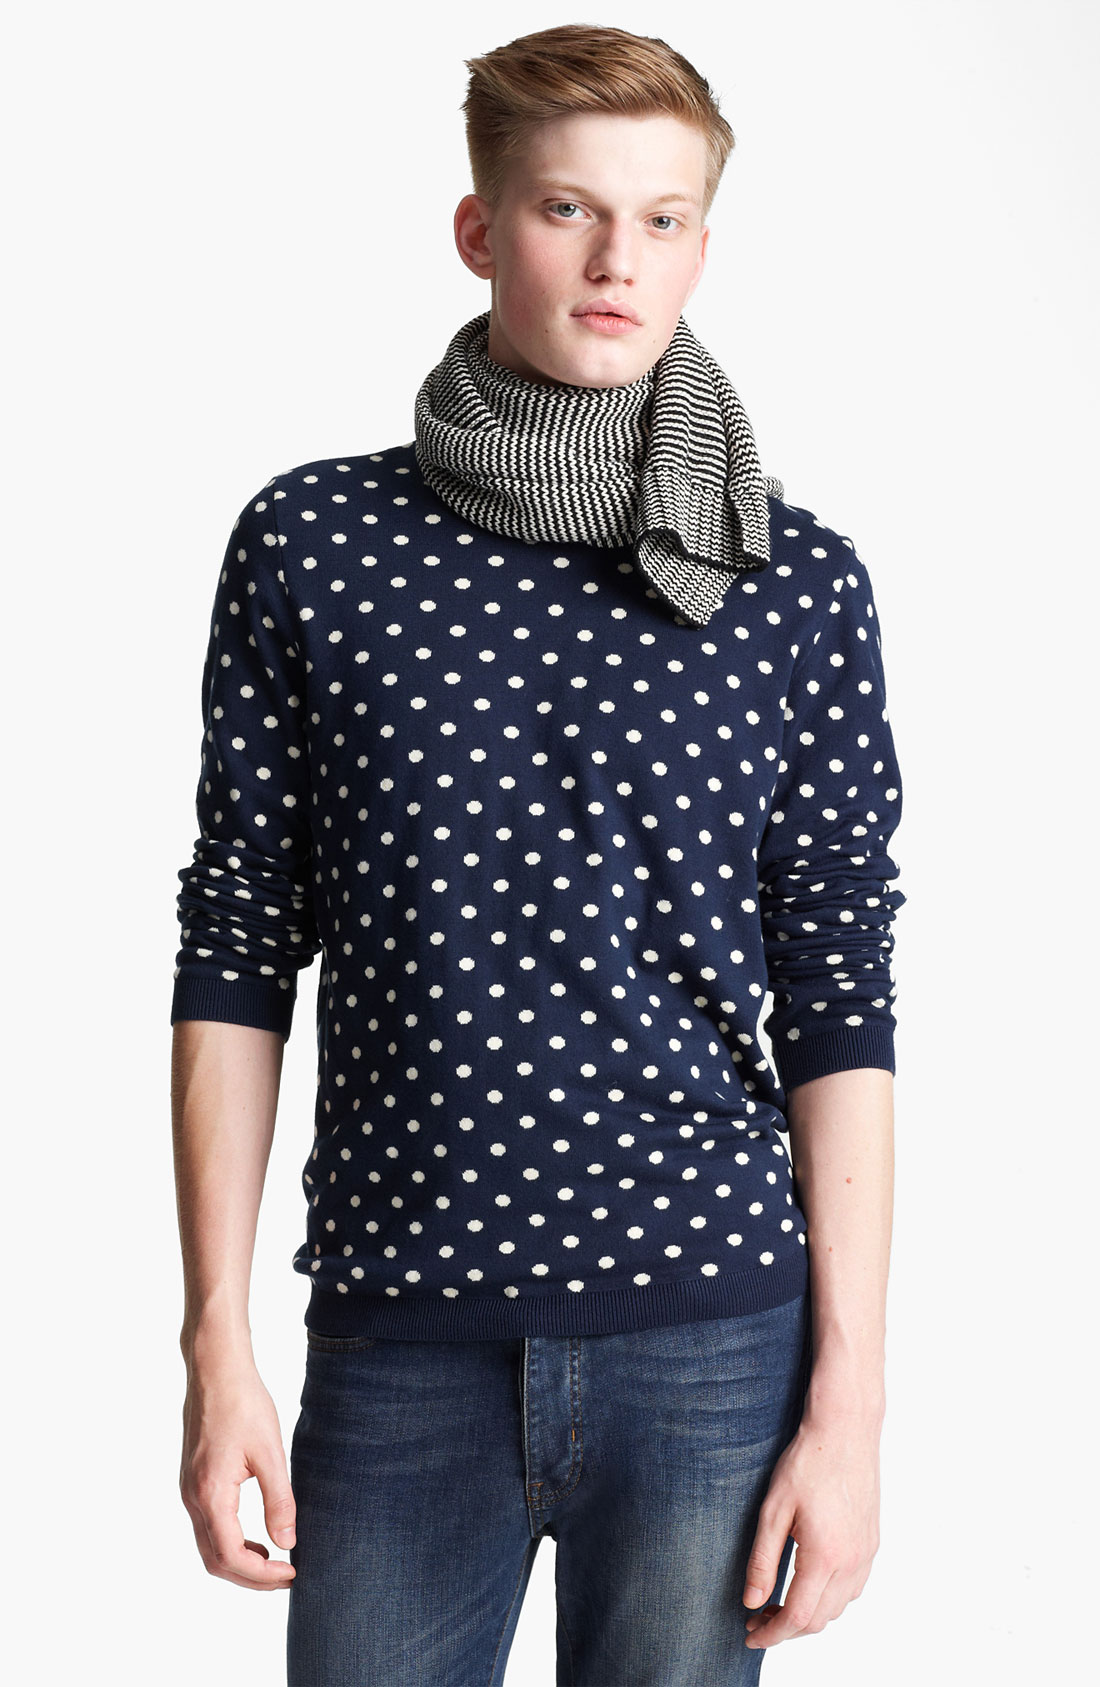 Shop for polka dot sweater online at Target. Free shipping on purchases over $35 and save 5% every day with your Target REDcard.